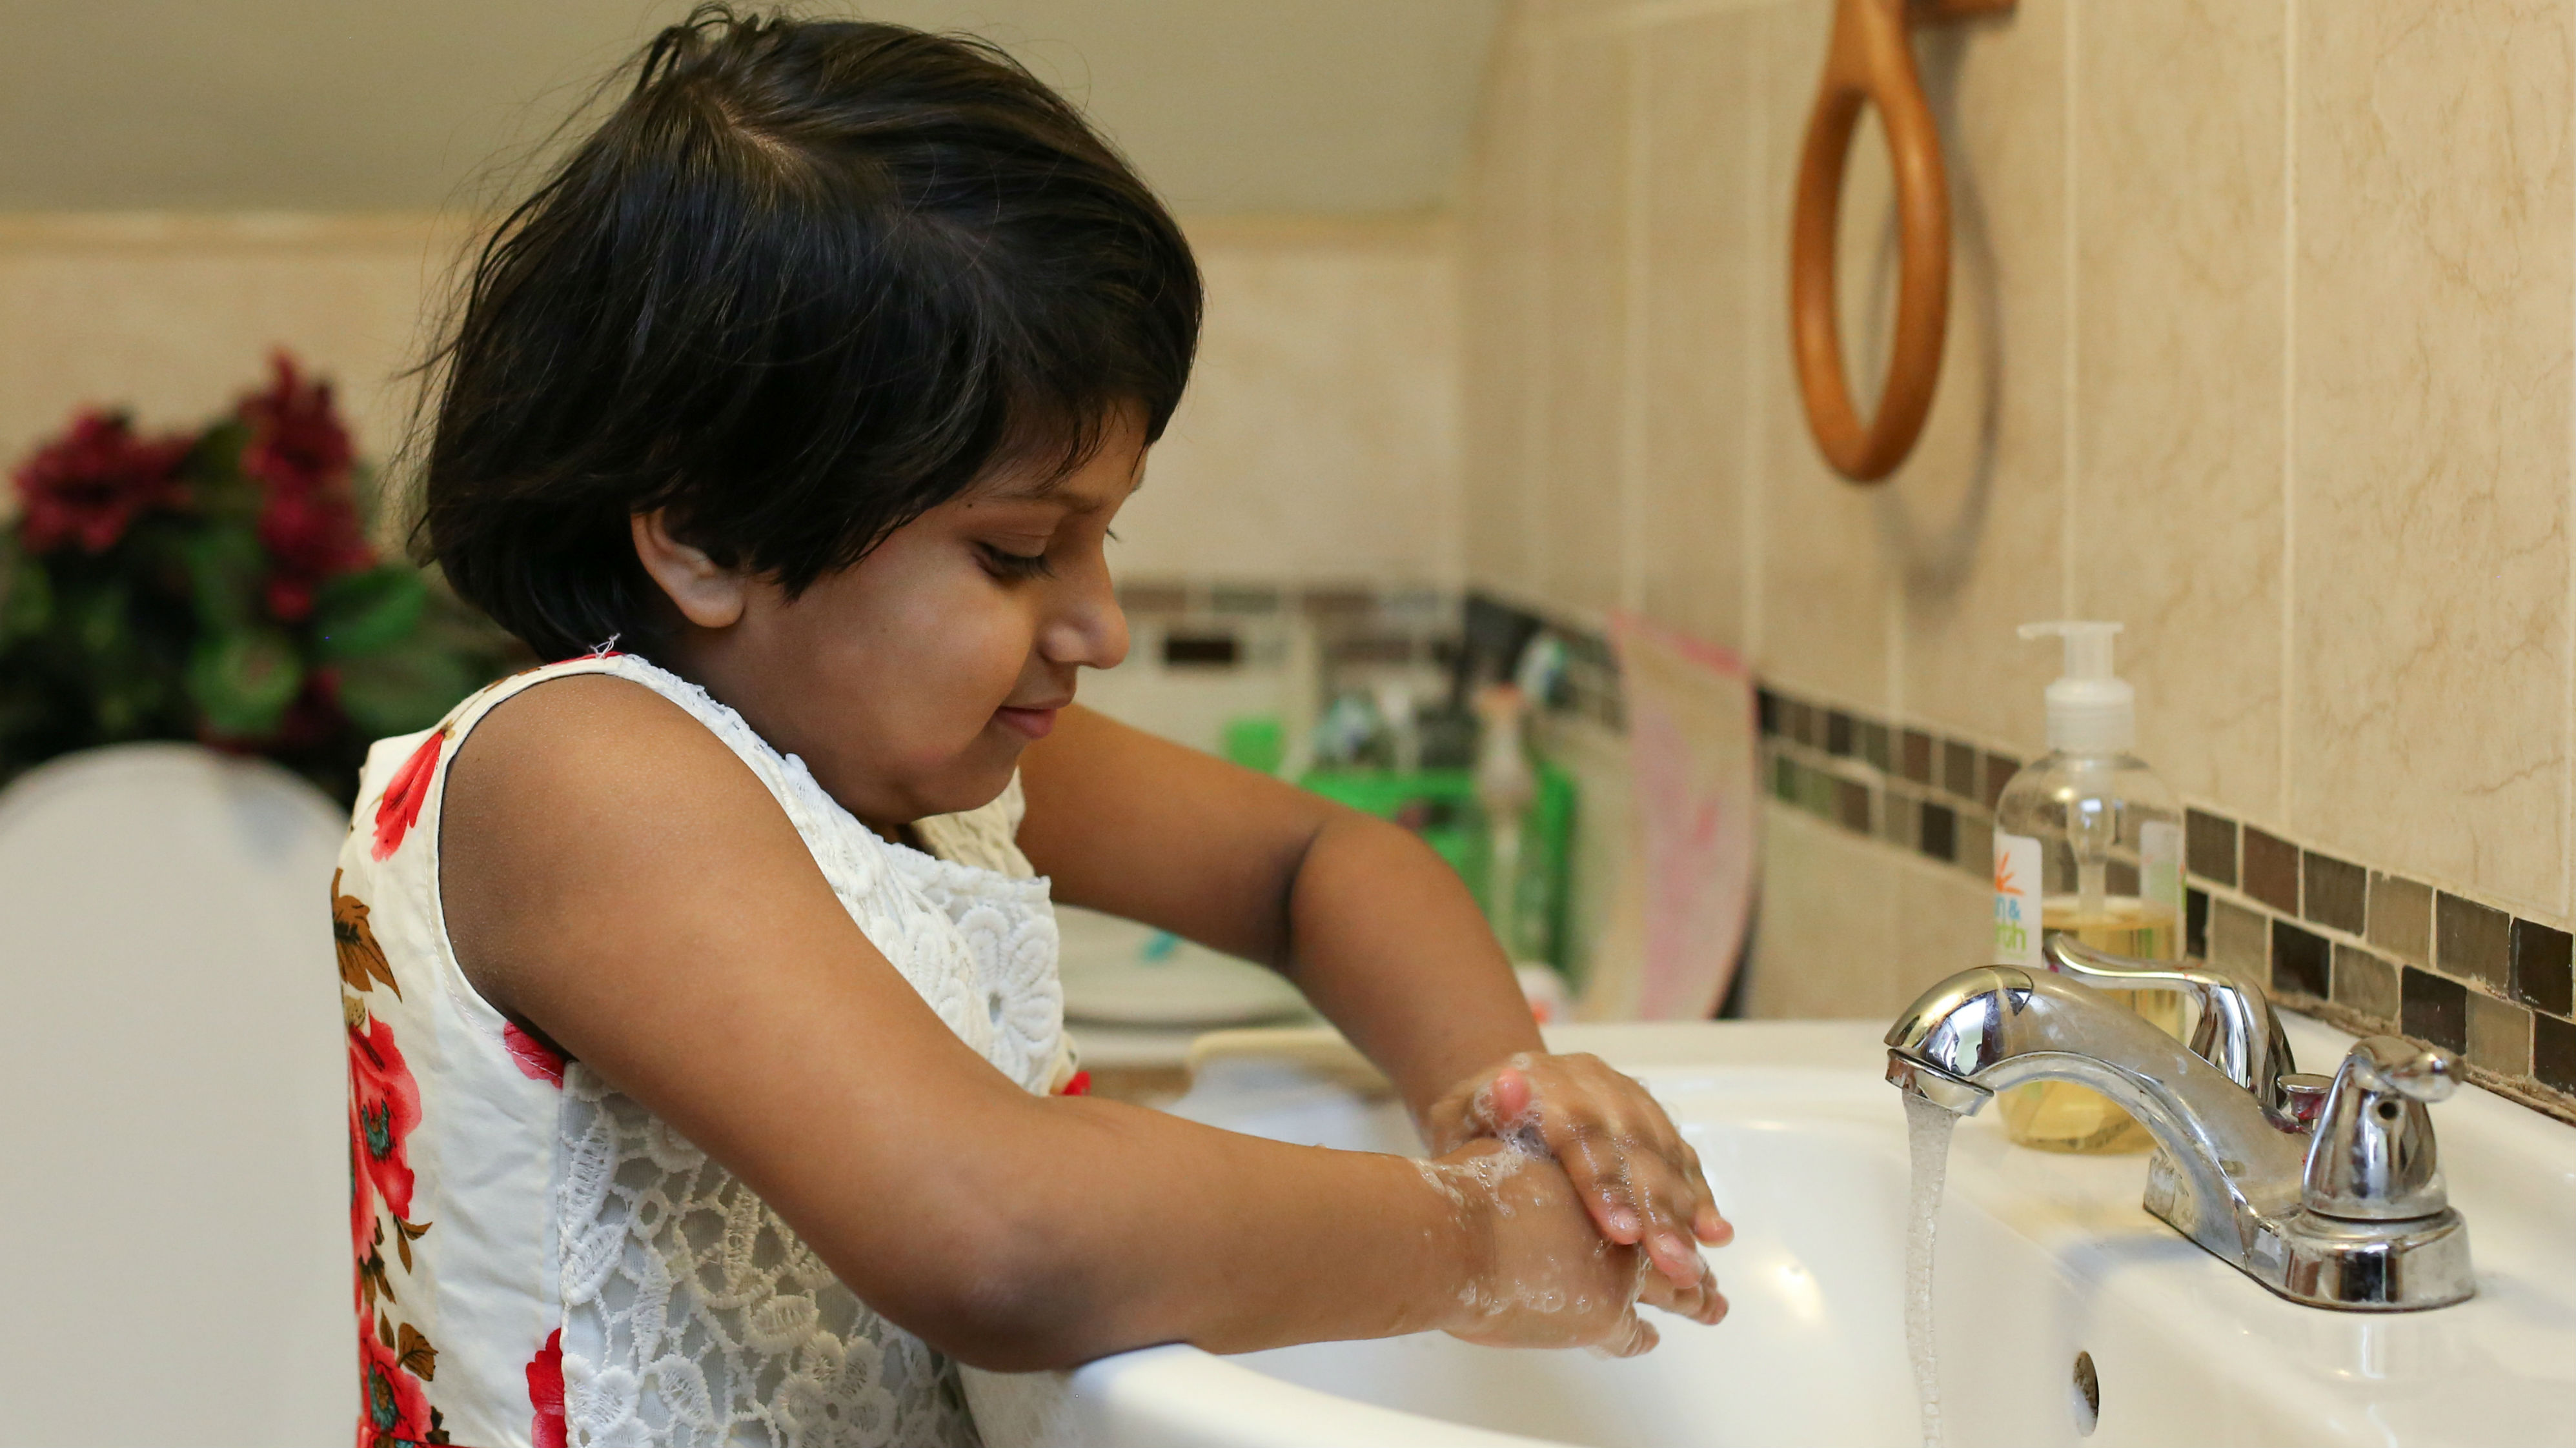 Nabiha A Chowdhury, 7, demonstrates her process for removing potential lead from her hands by washing them at her home in Buffalo, New York March 30, 2017.